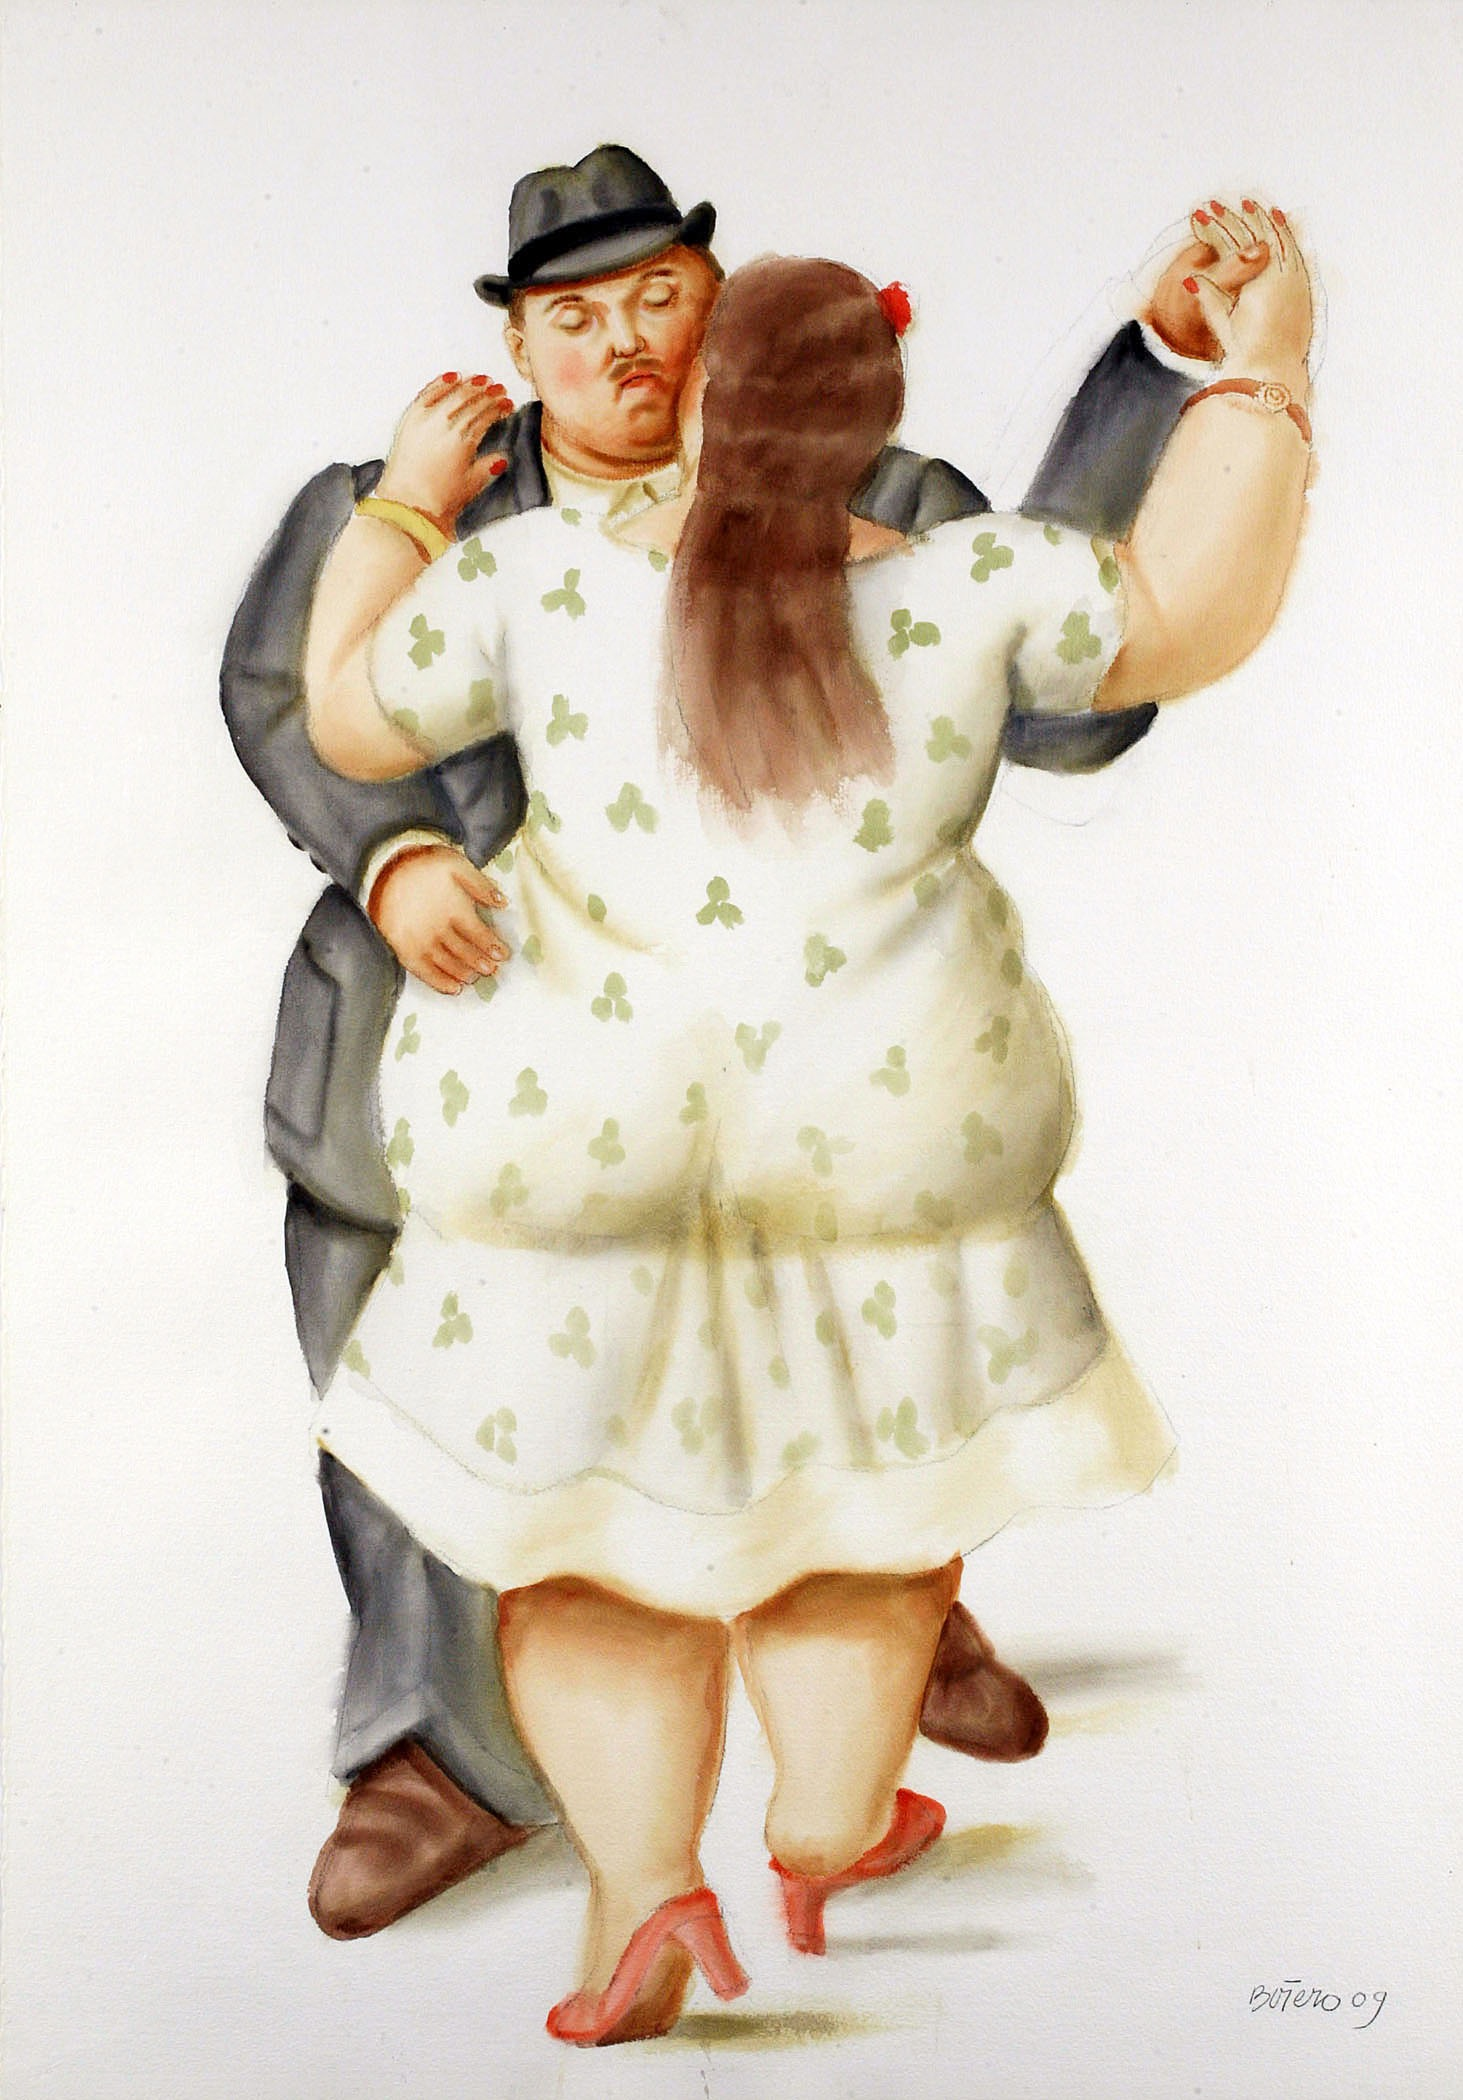 Botero, Dancers, 2009, watercolor on paper, 105 x 75 cm, NOS 50 279.jpg